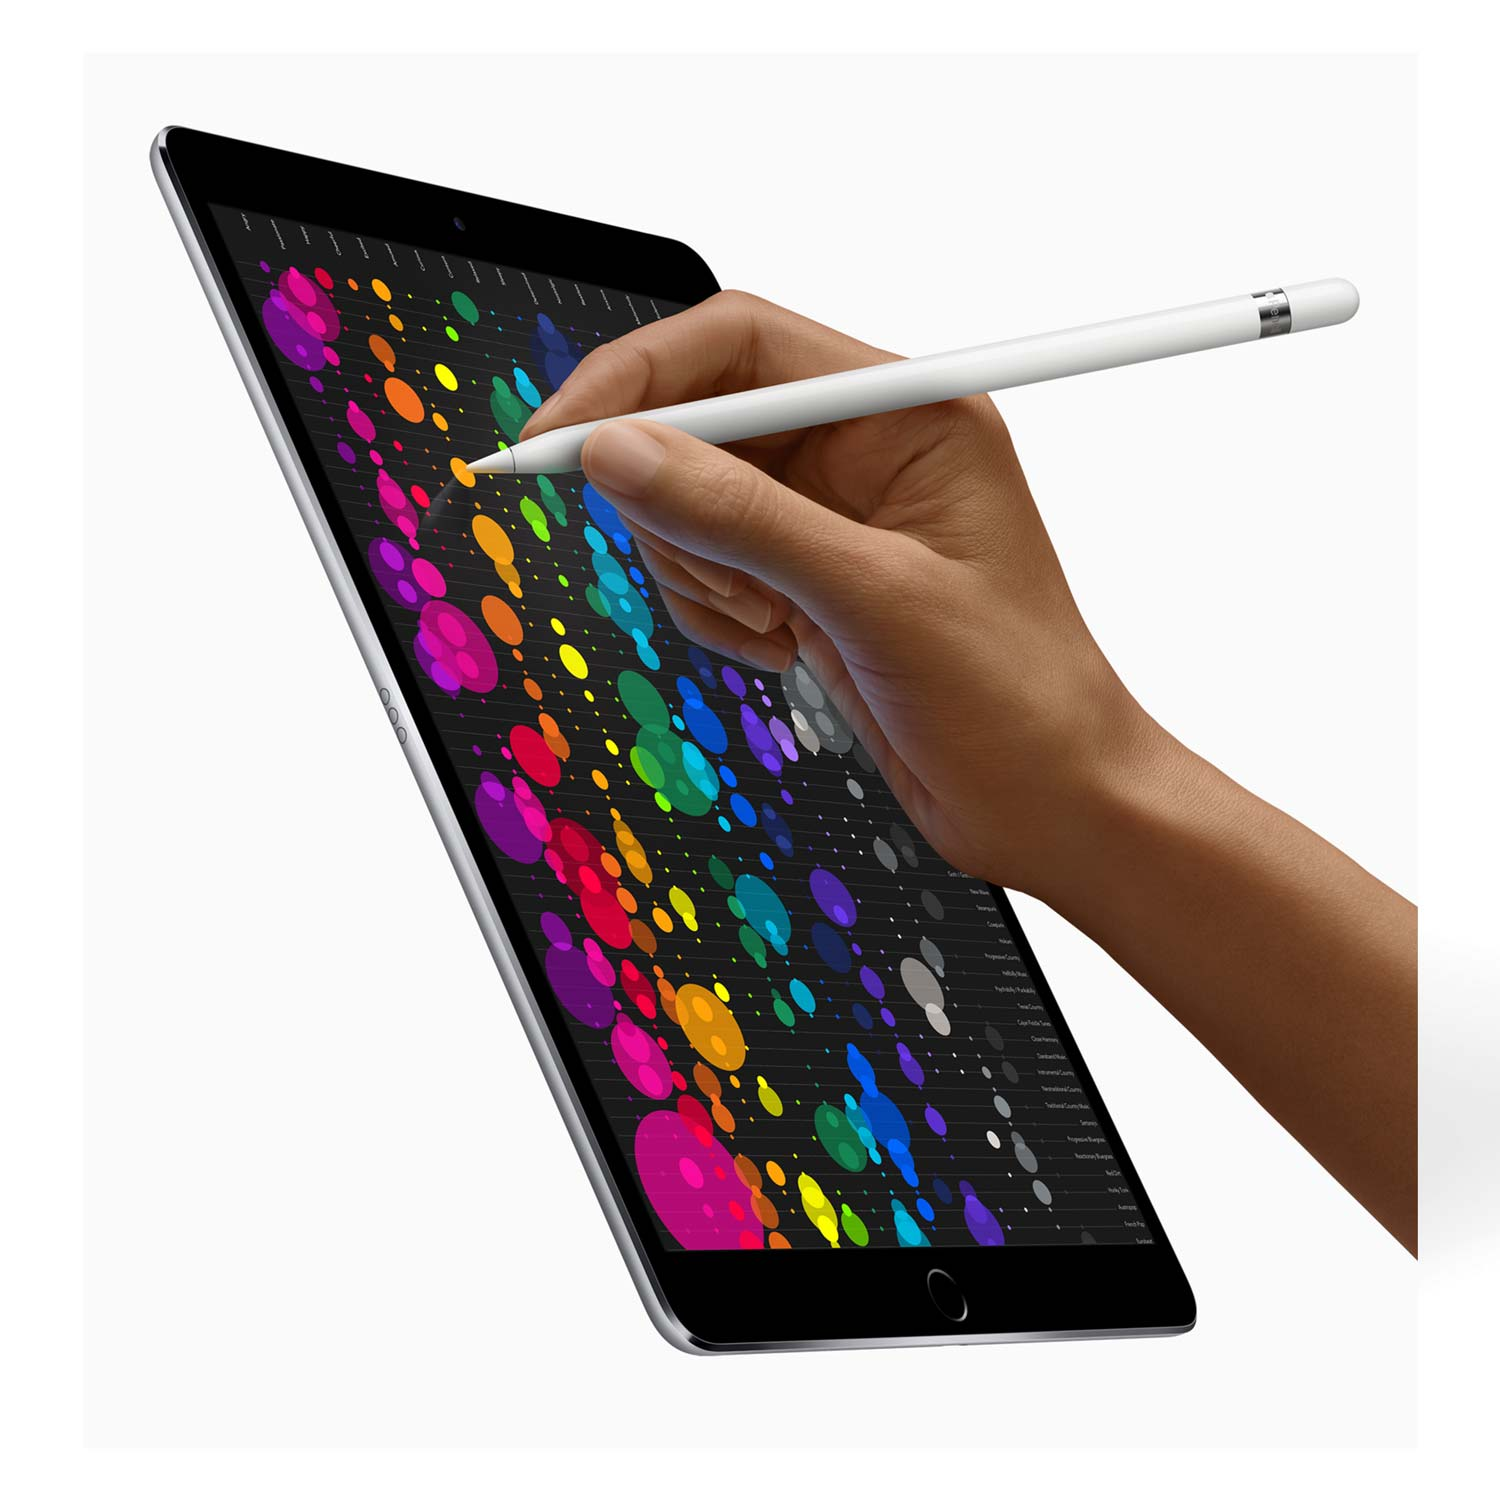 10-inch iPad Pro 2017 with Apple Pencil